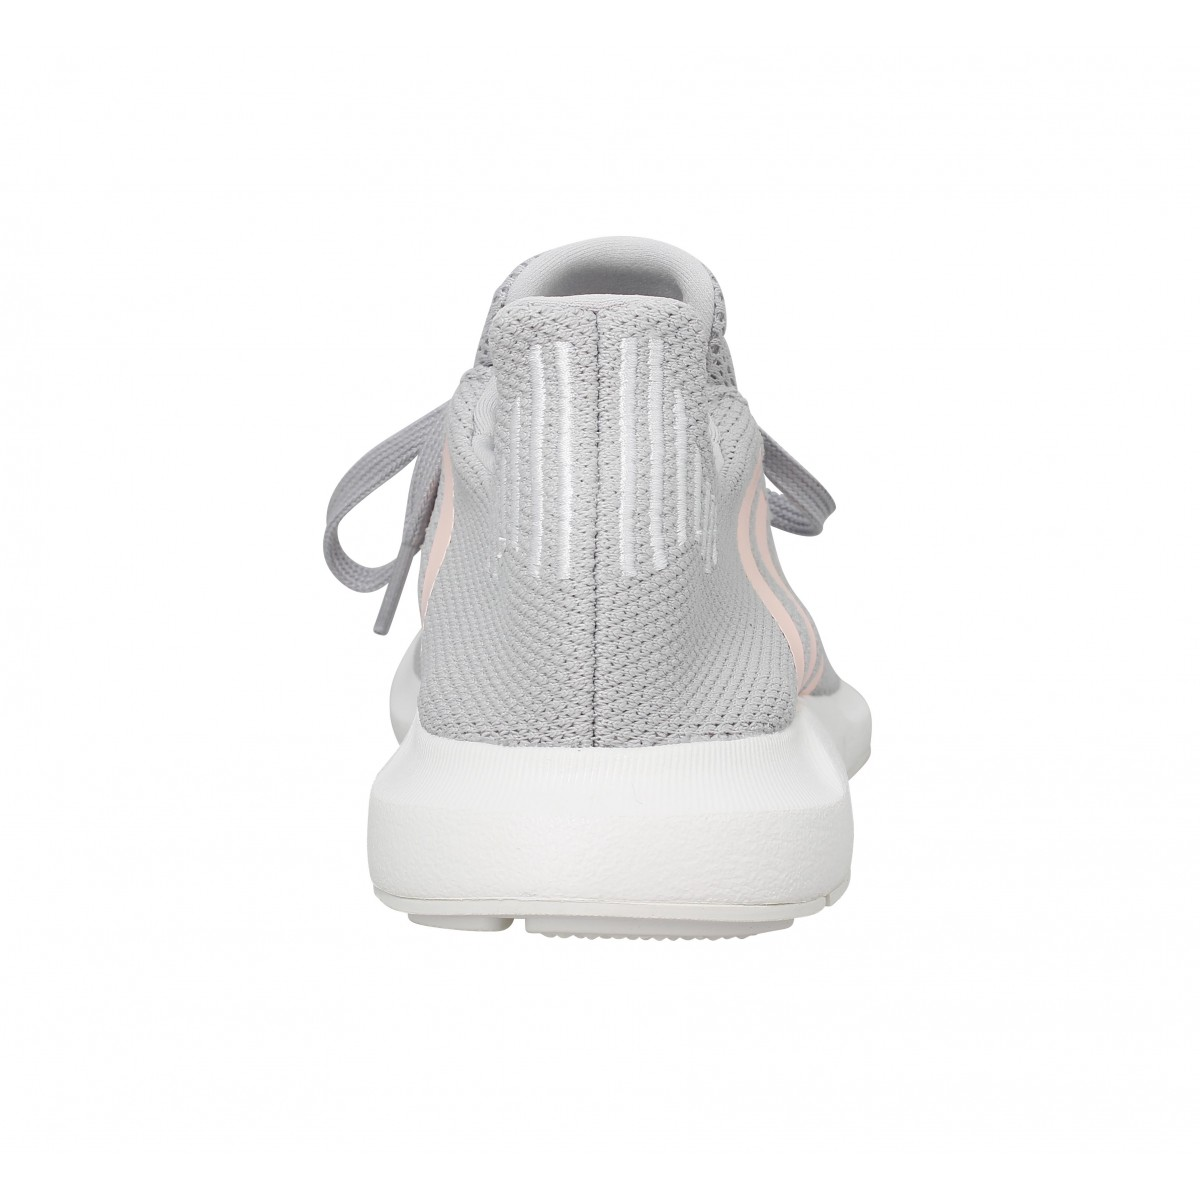 ADIDAS Swift Run toile Femme Gris